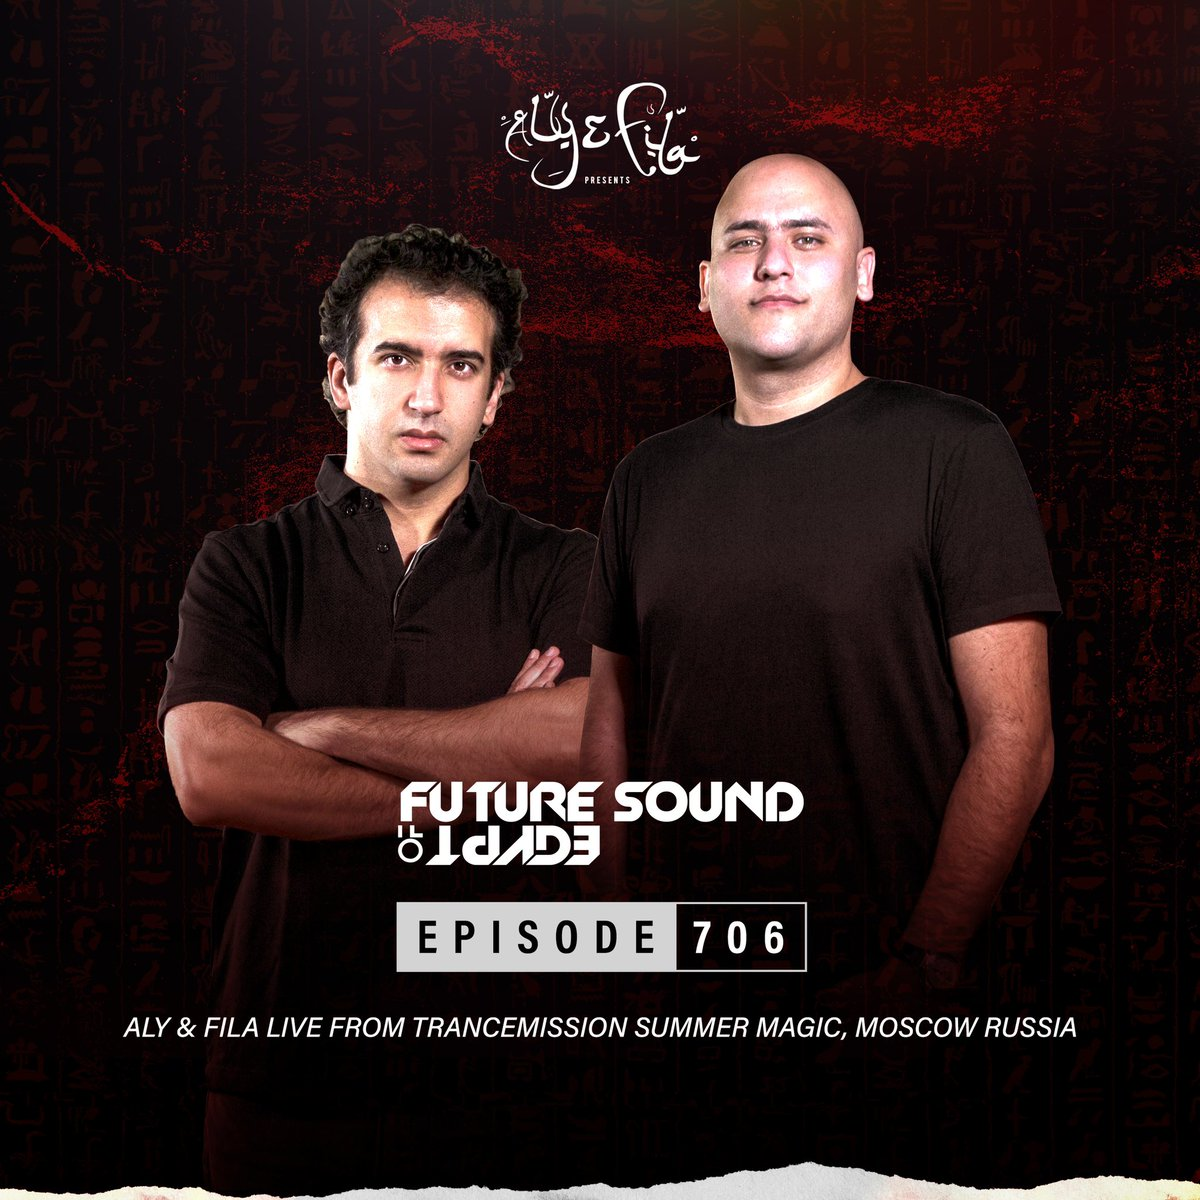 Tune into #FSOE706 to hear our set recorded live from Trancemission Moscow last weekend 🔥 https://t.co/1PqoV1898k